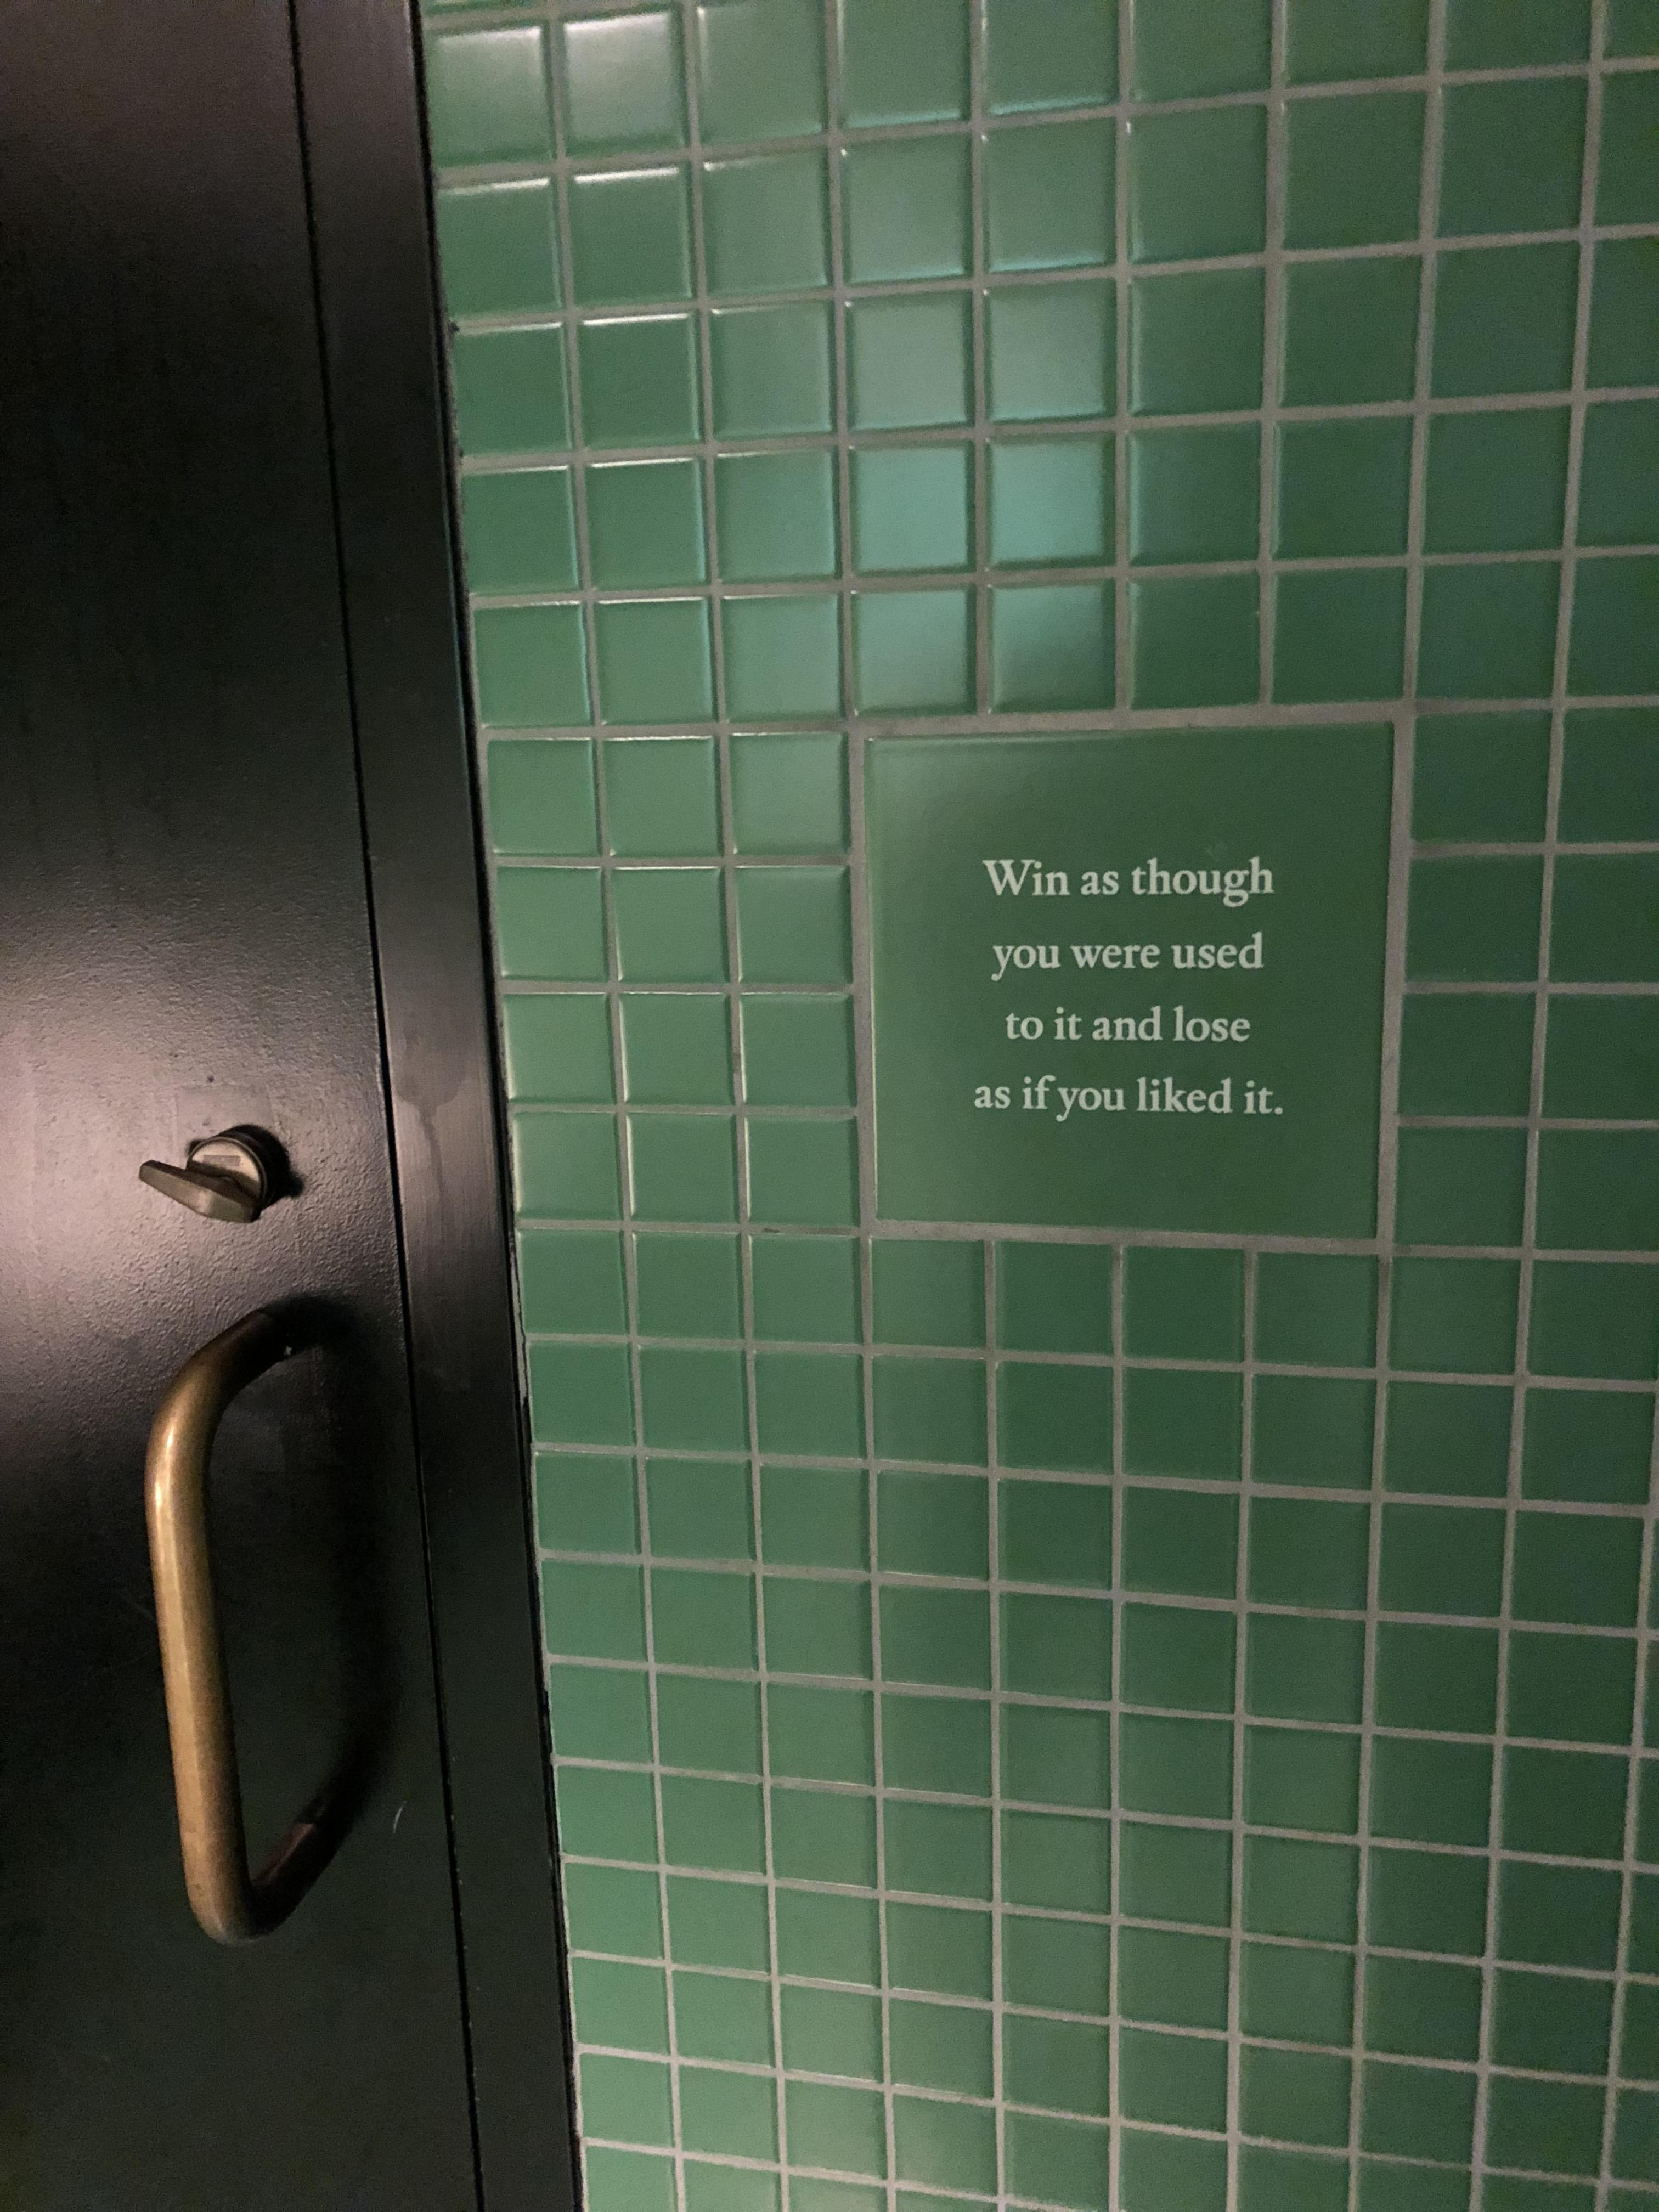 [image] On the bathroom wall